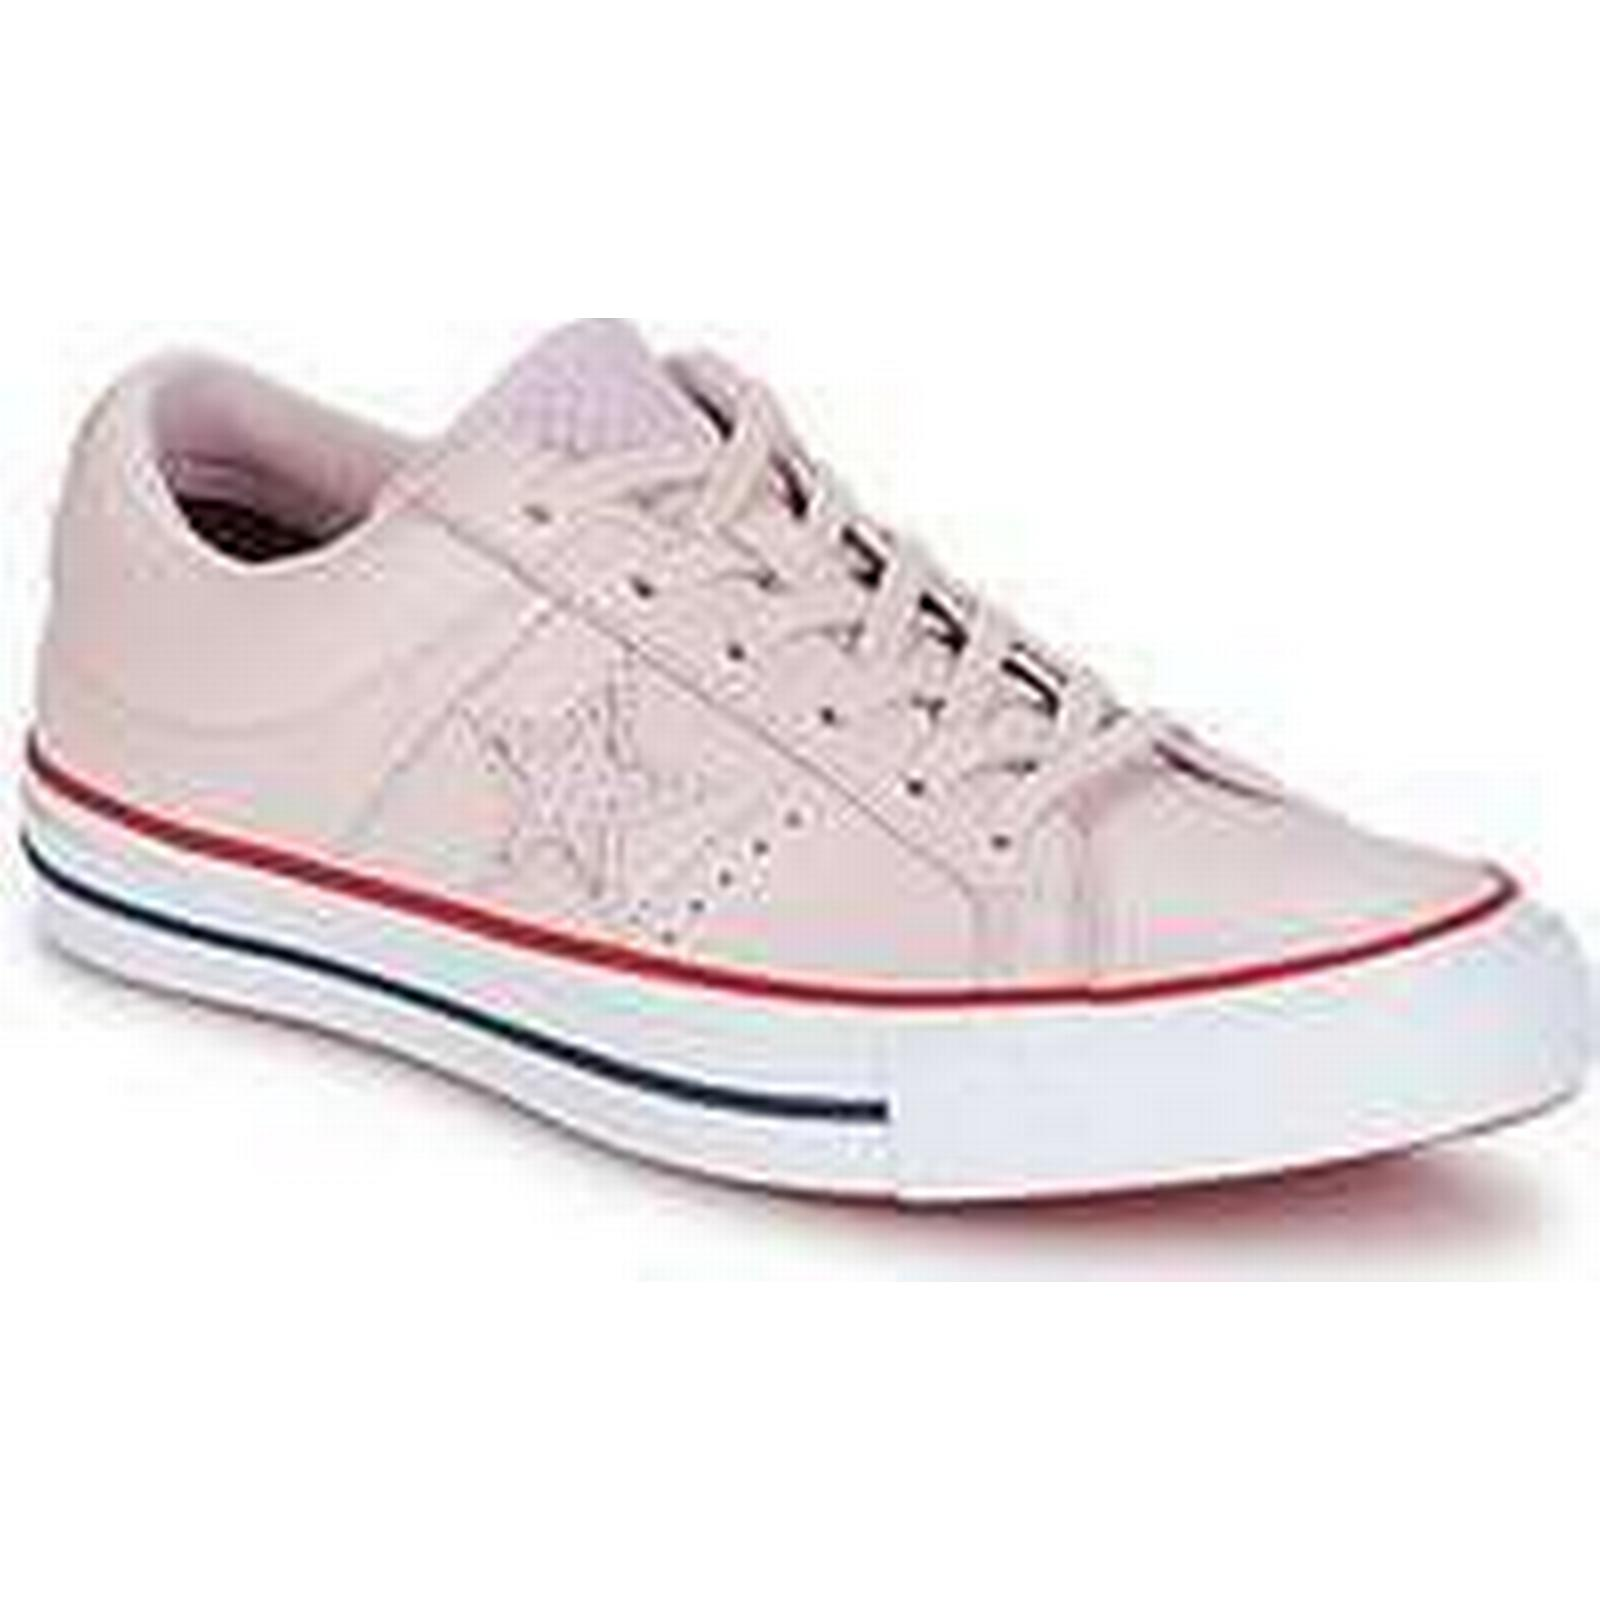 Spartoo.co.uk Shoes Converse One Star-Ox women's Shoes Spartoo.co.uk (Trainers) in Pink 4a9509